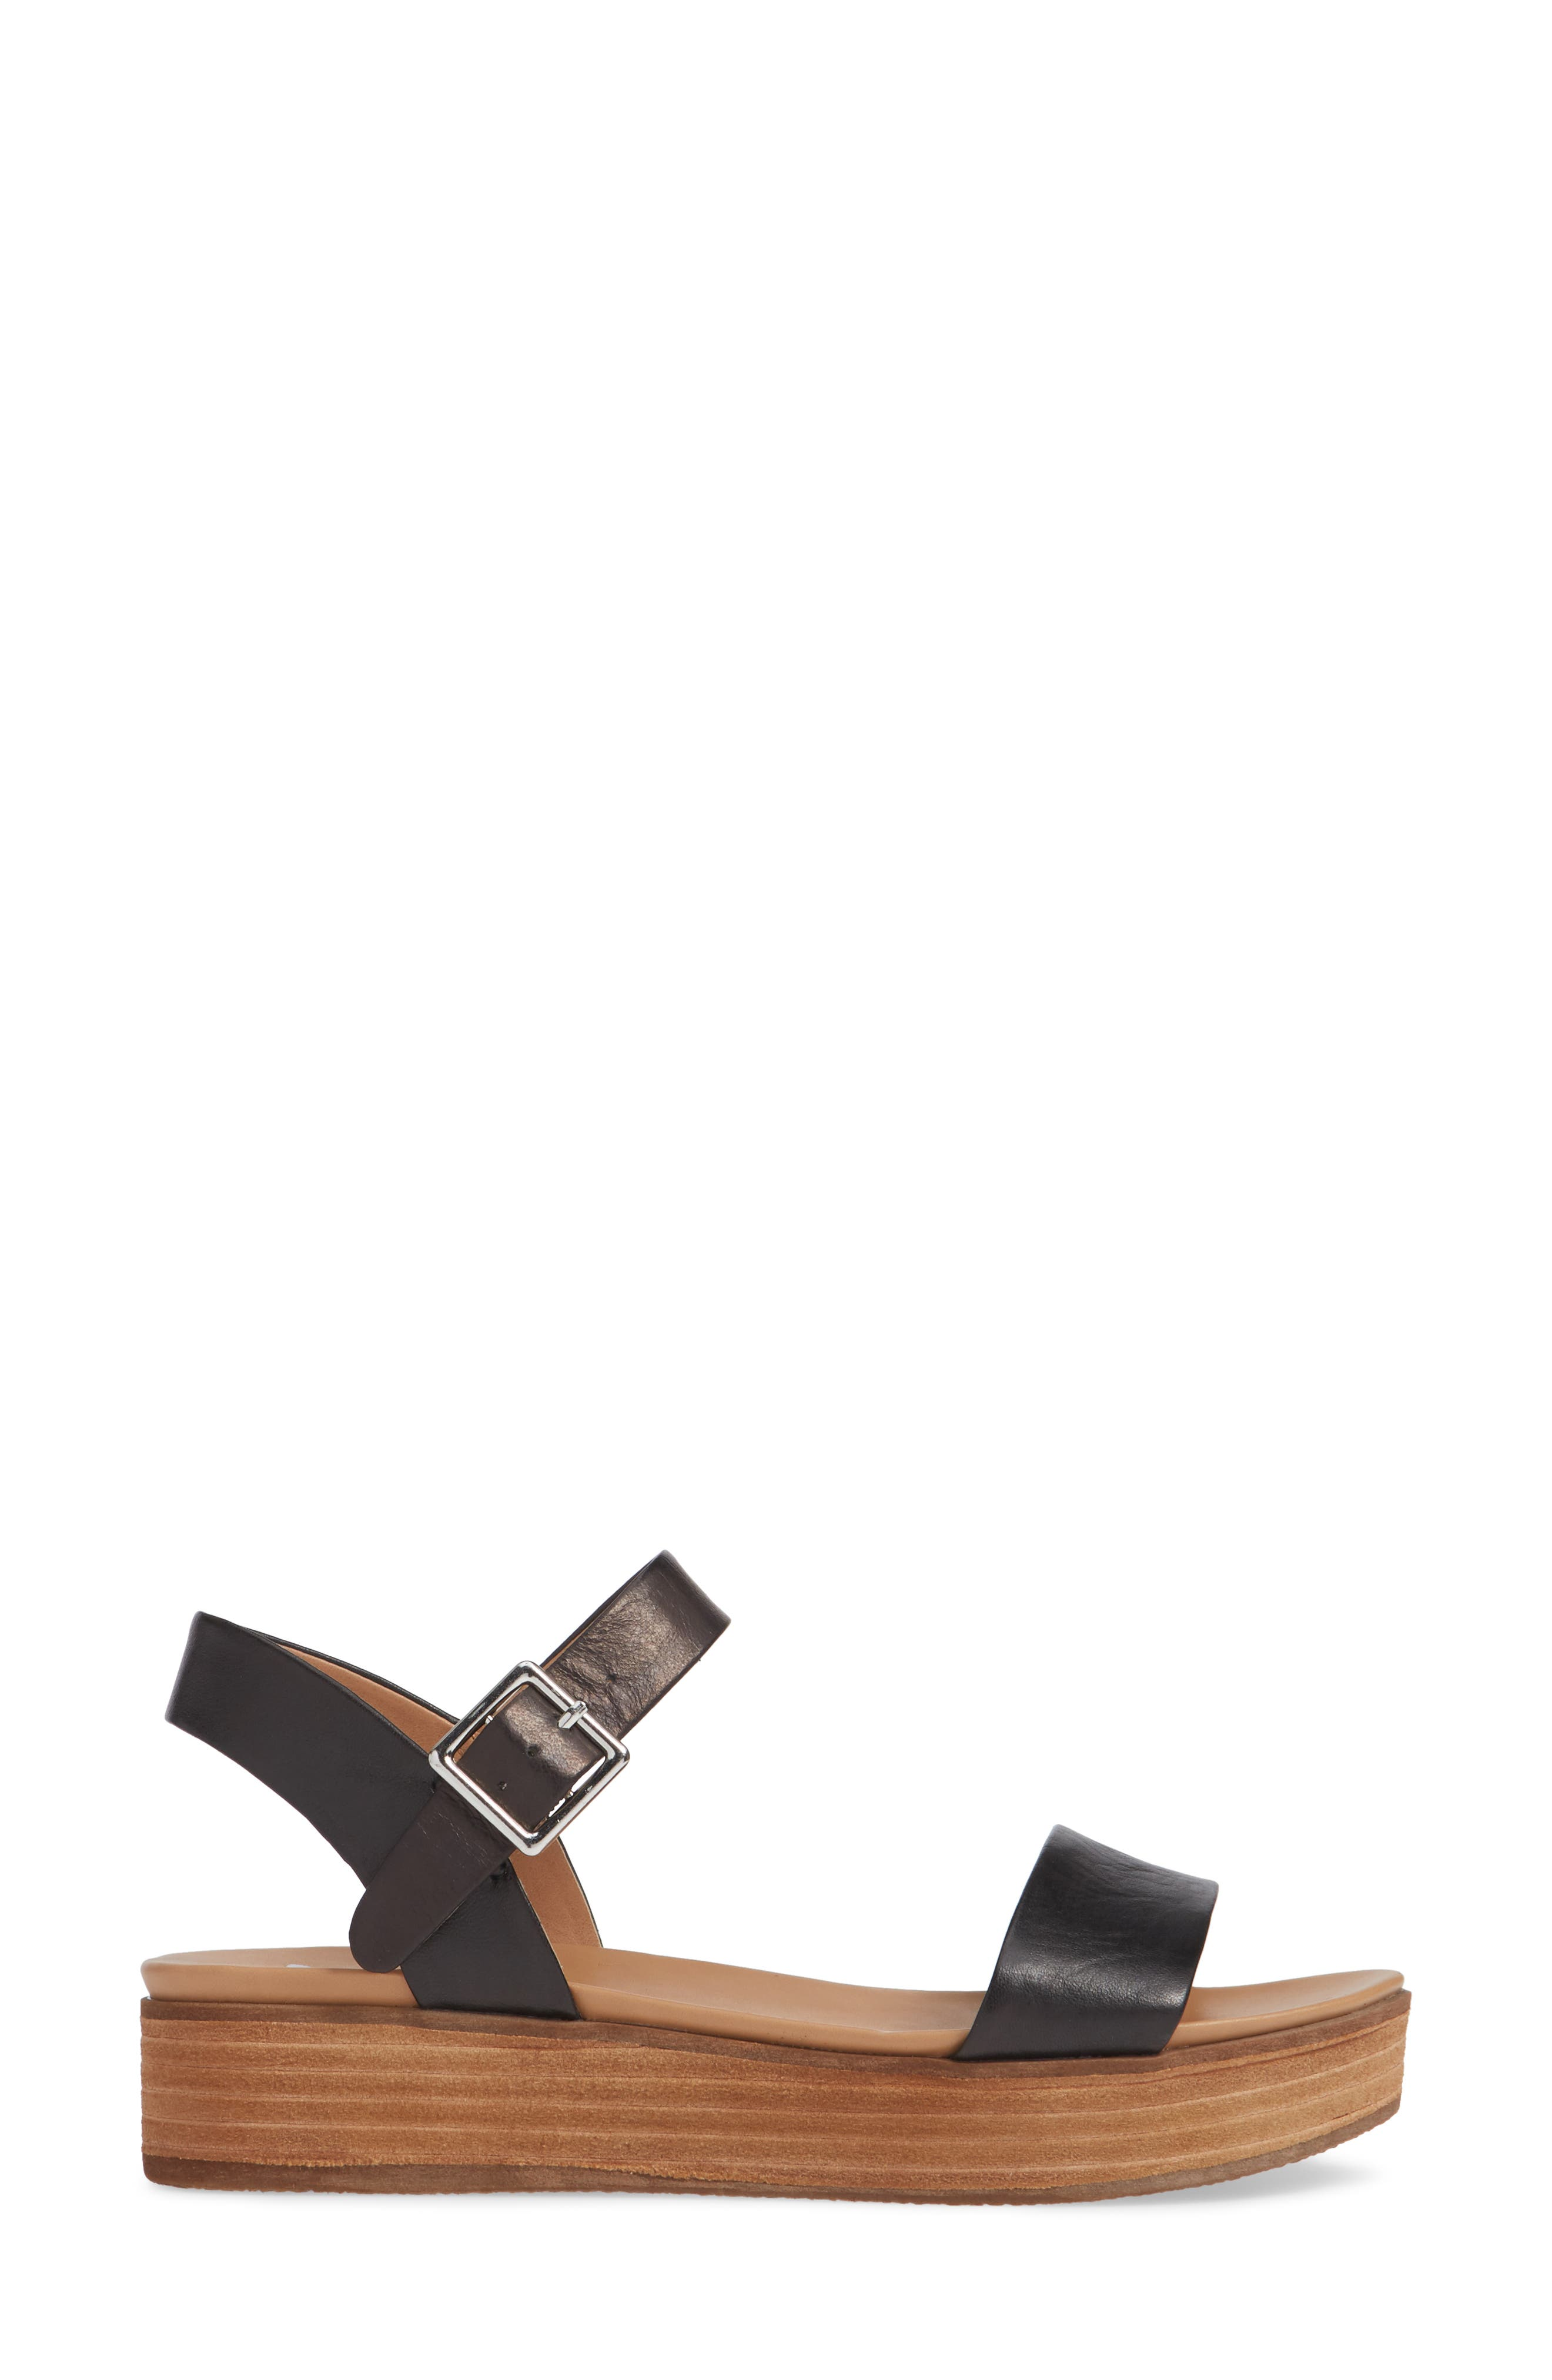 Aida Platform Sandal,                             Alternate thumbnail 3, color,                             BLACK LEATHER